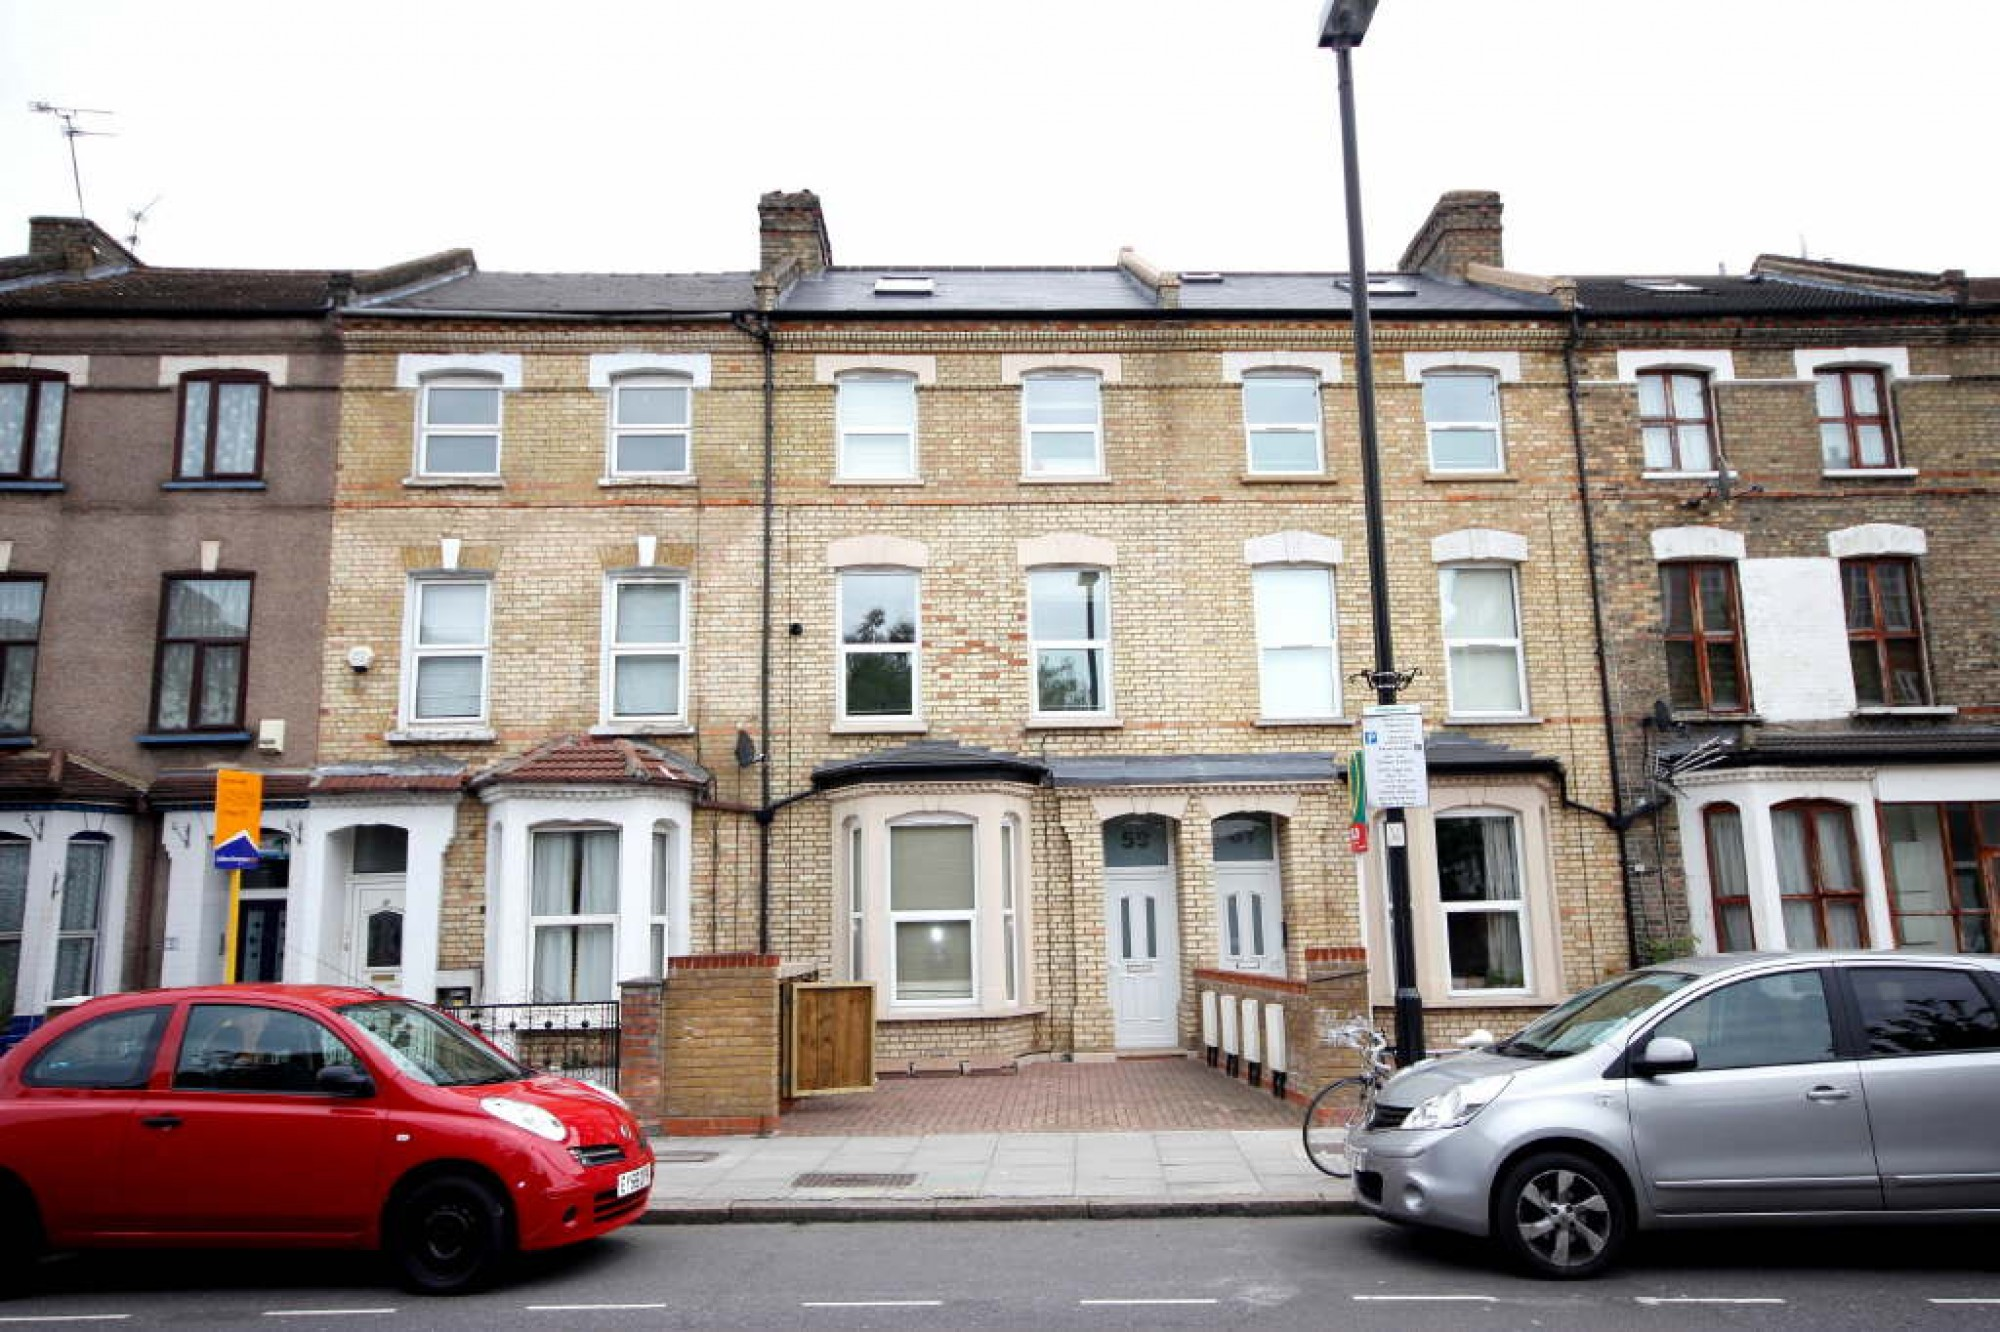 Images for Blackstock Road, Finsbury Park, London EAID:931013c273837aec744cf2e7889cb460 BID:3